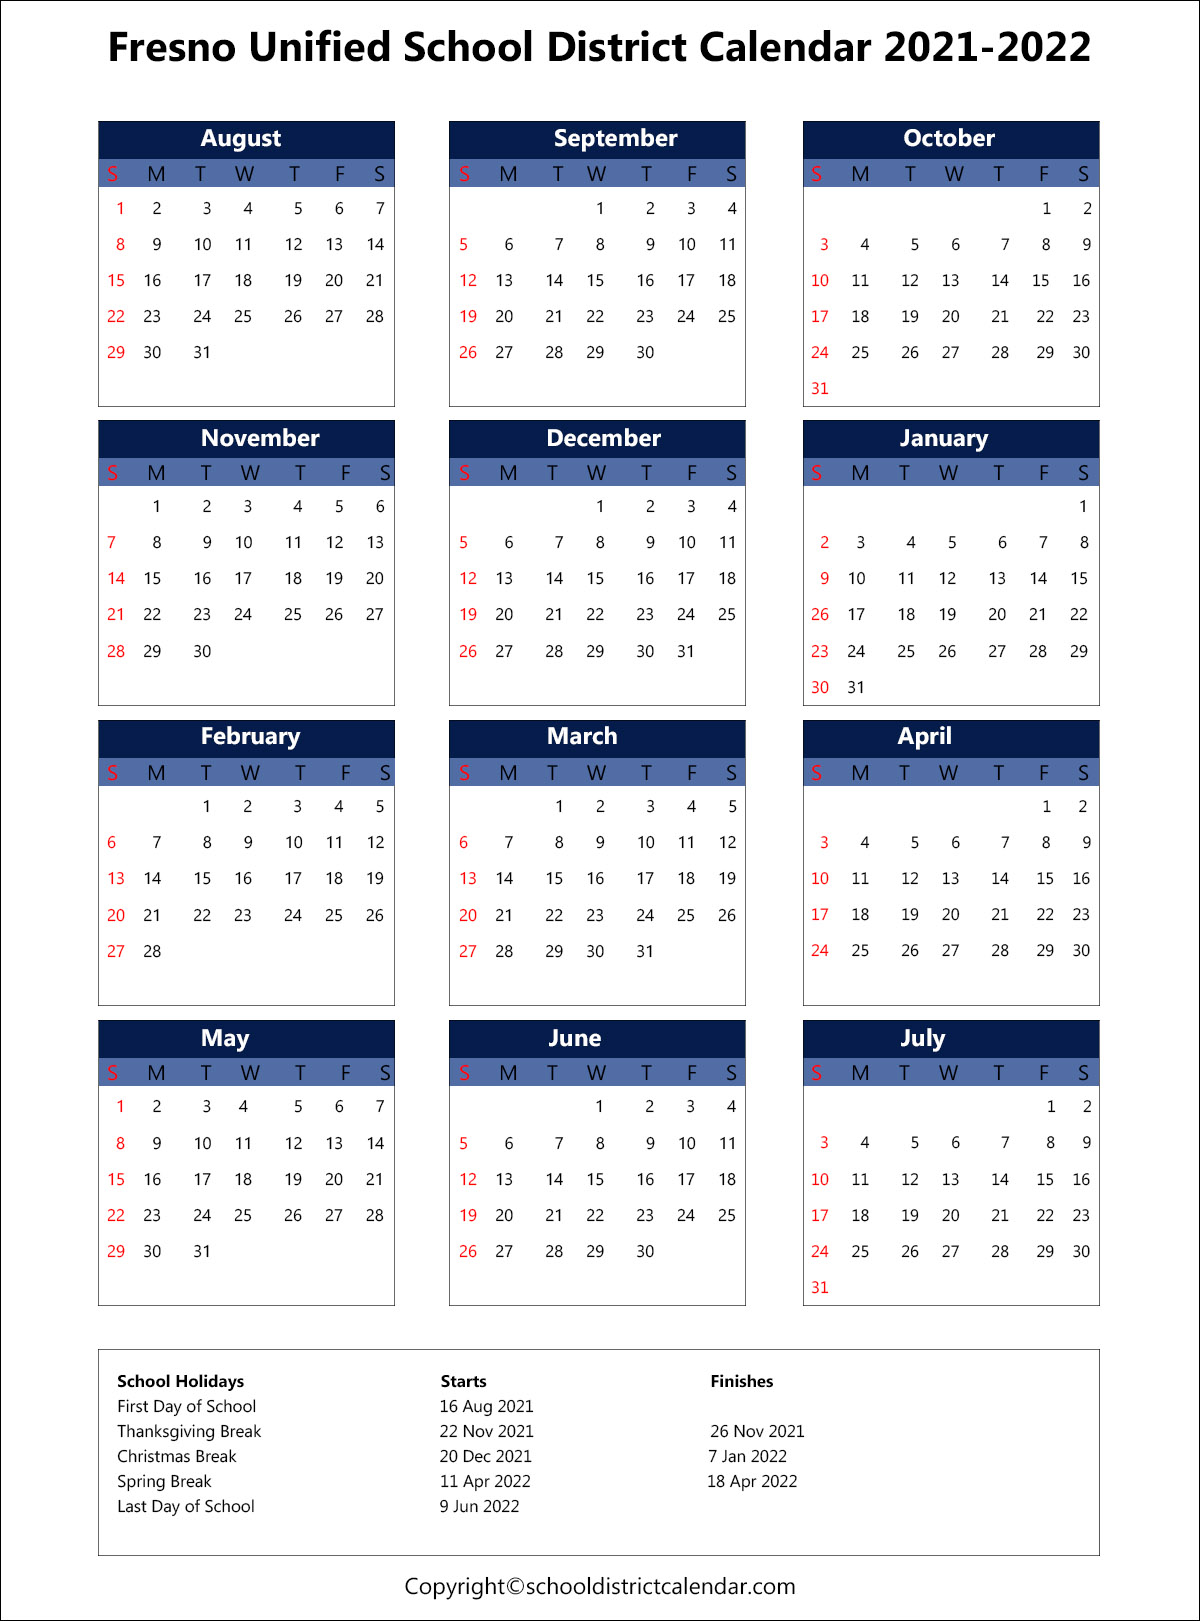 Fresno Unified School District Calendar Holidays 2021 2022